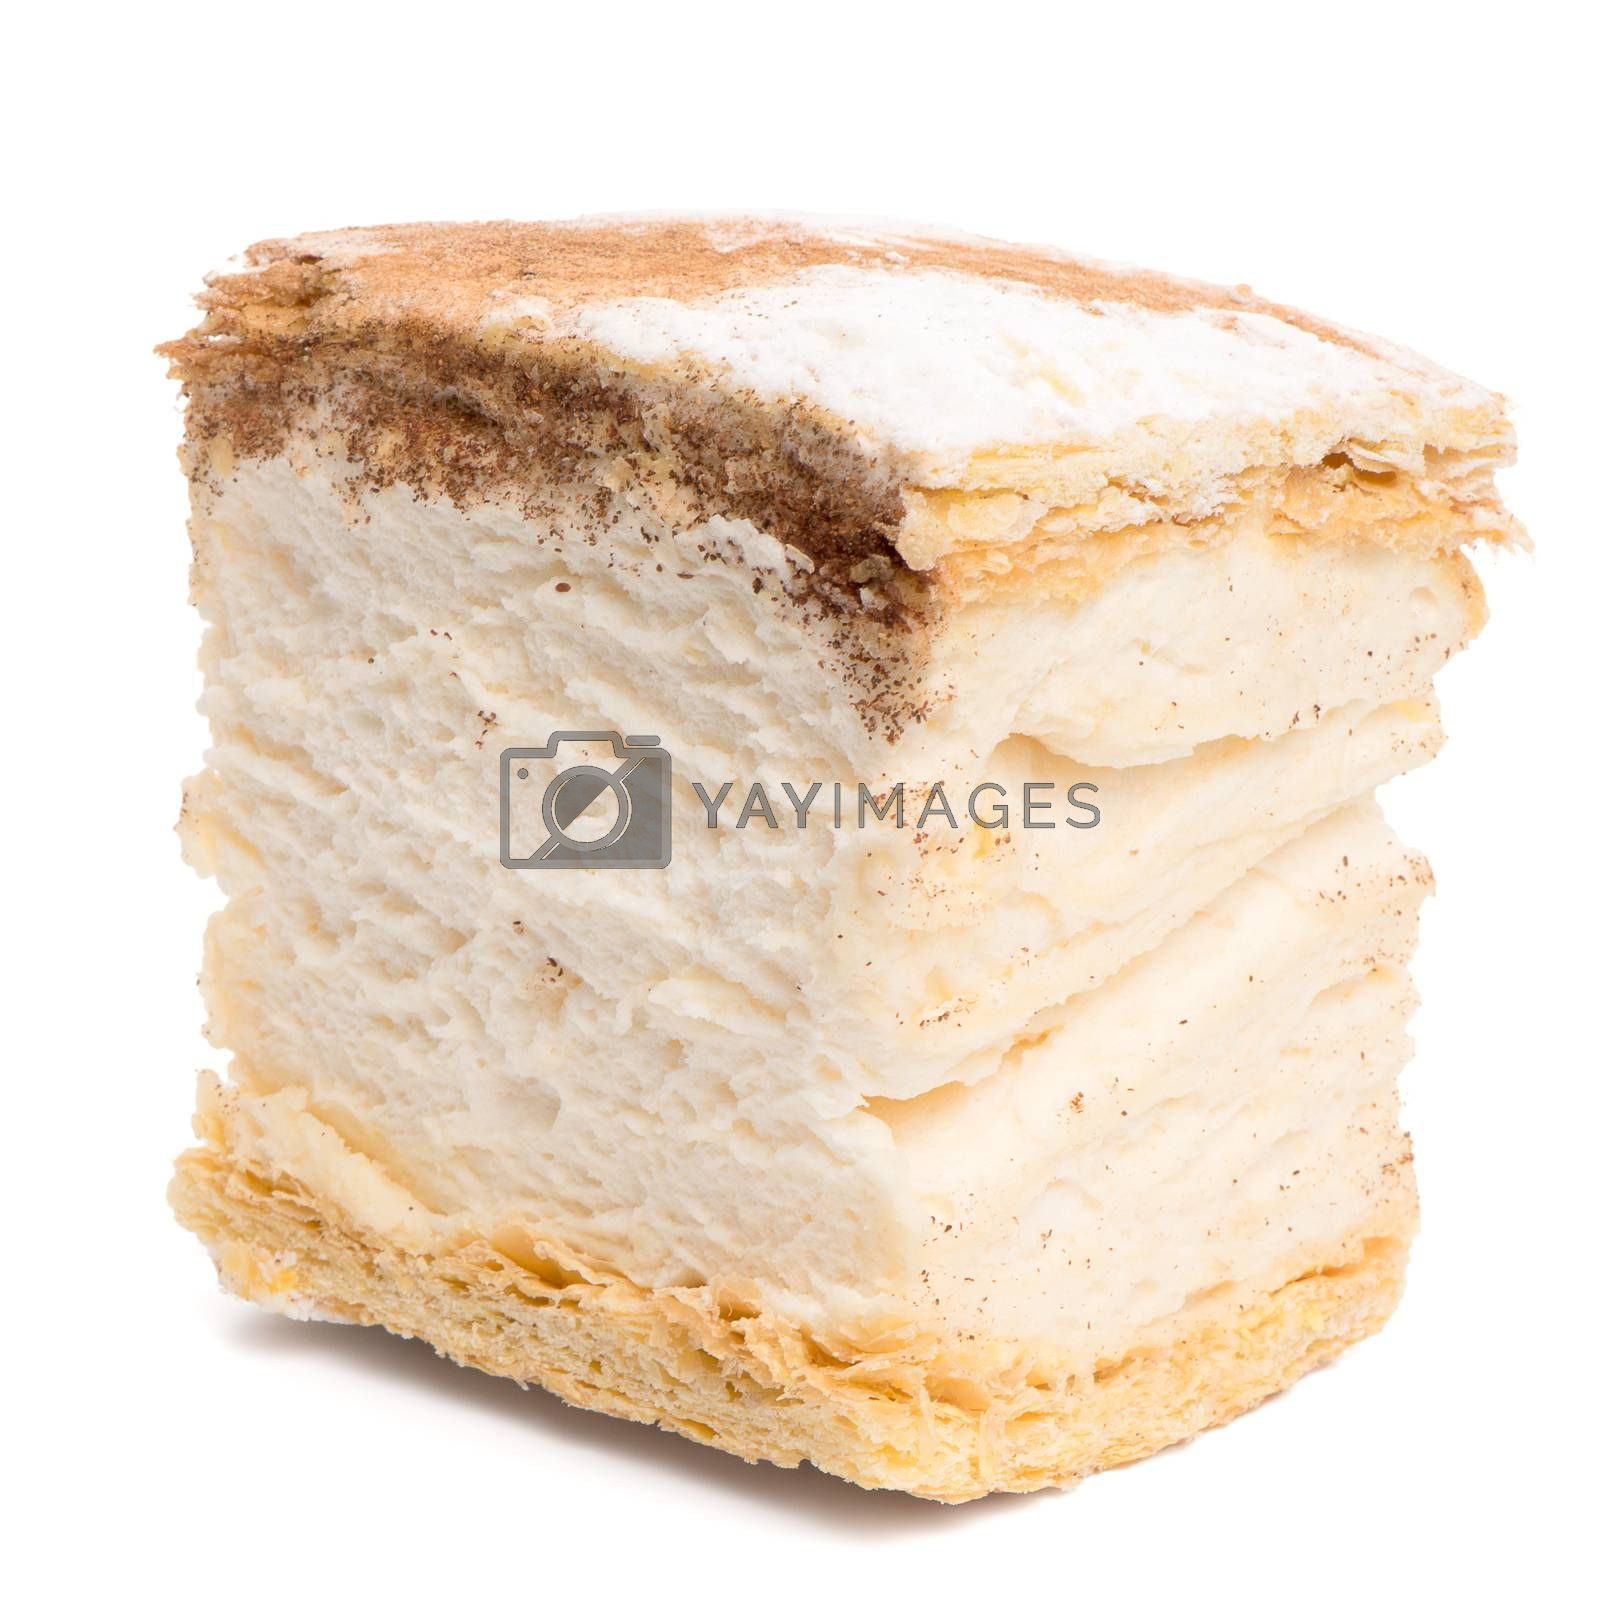 Russo cake pastry isolated on a white background.